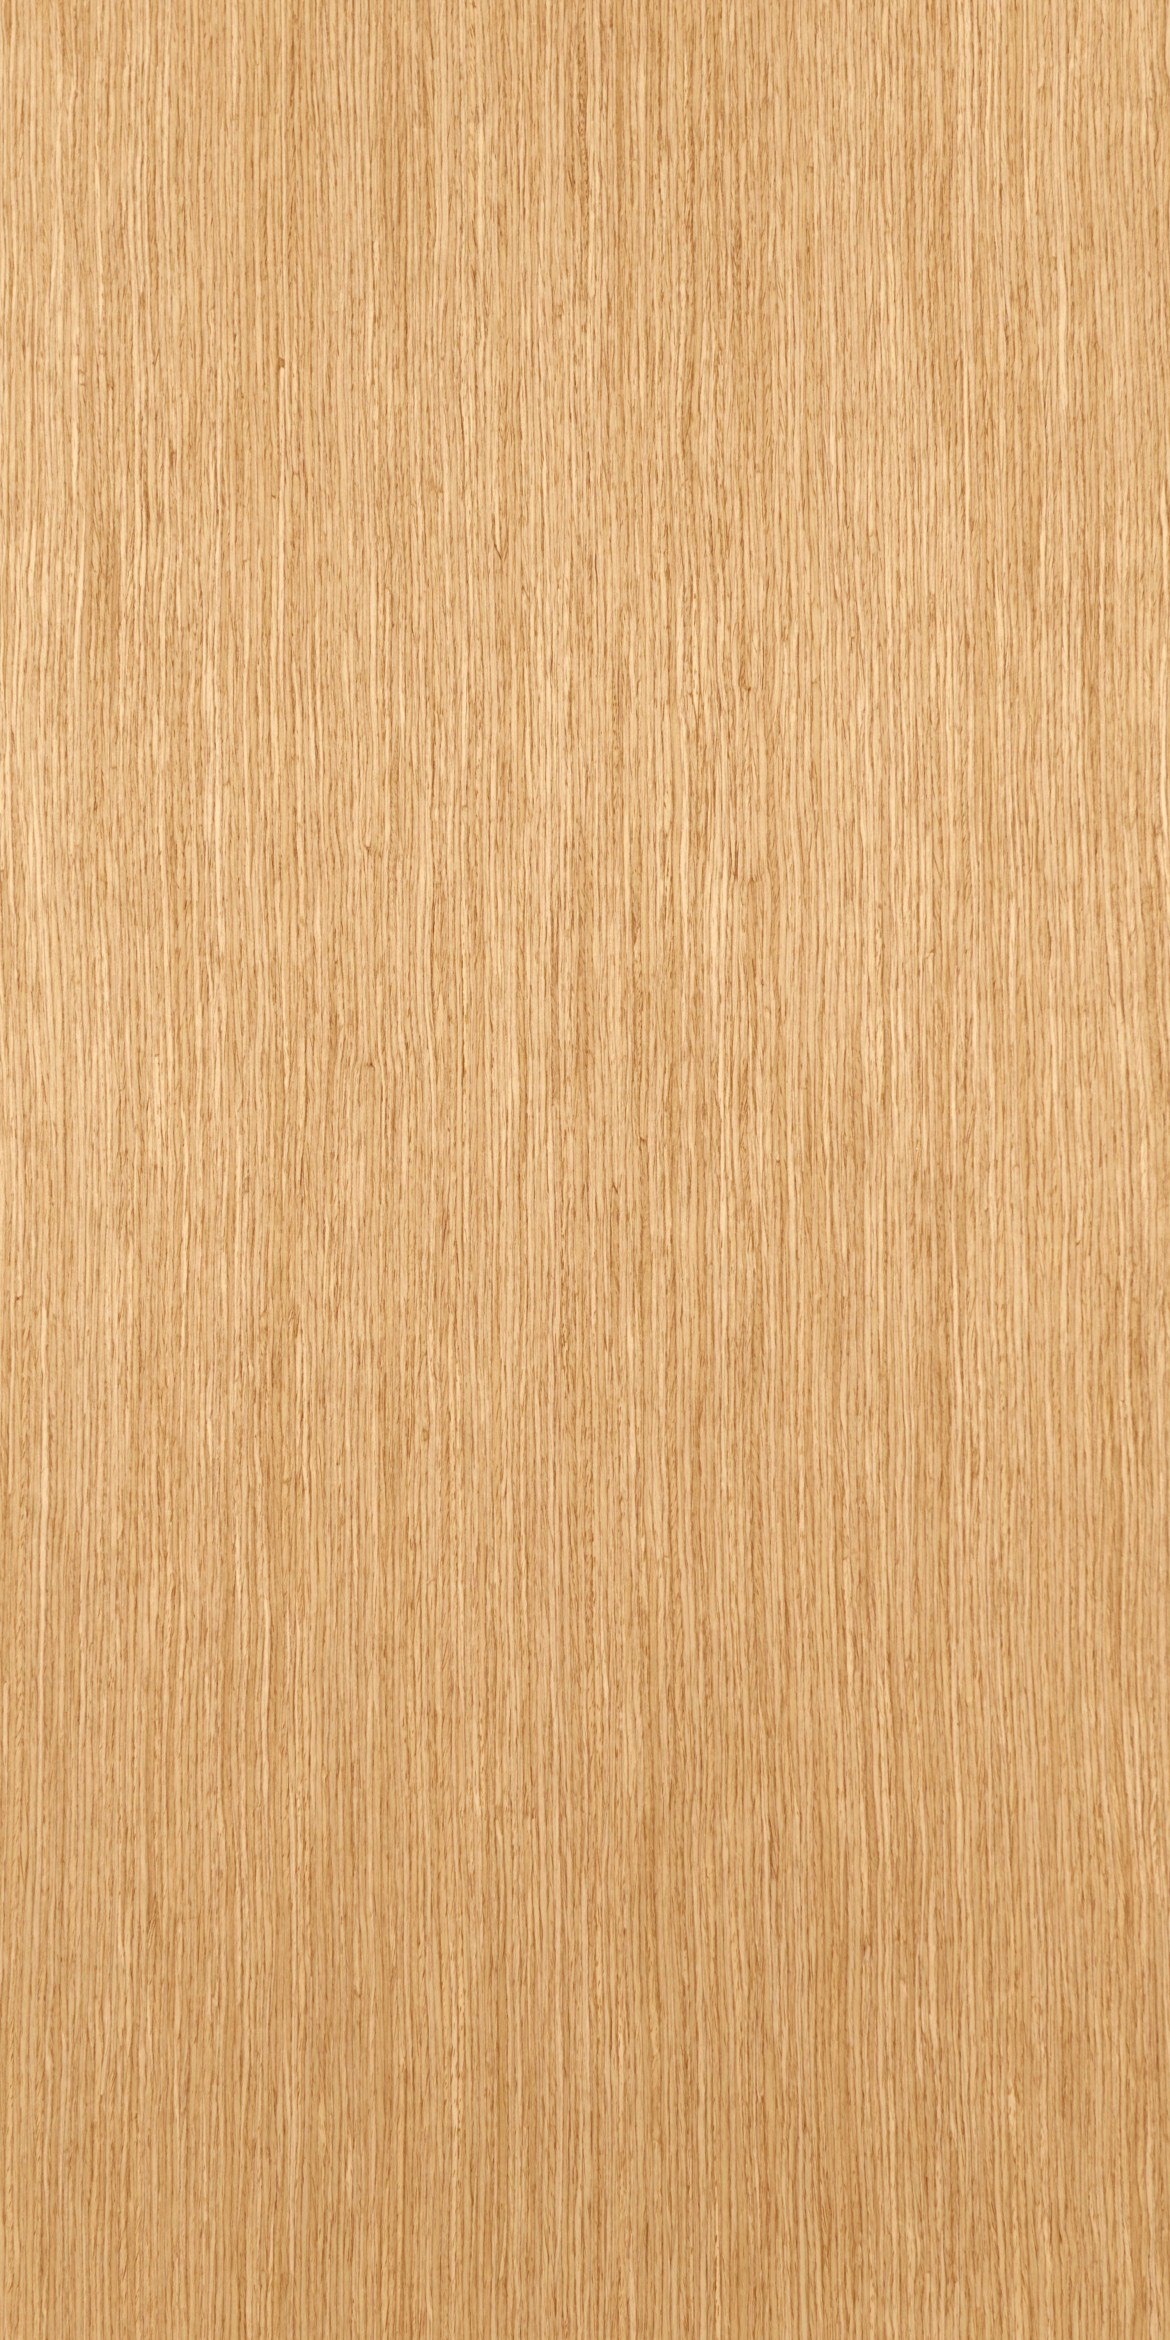 265 Recon American Oak Veneer Plywood Billiona Enterprise